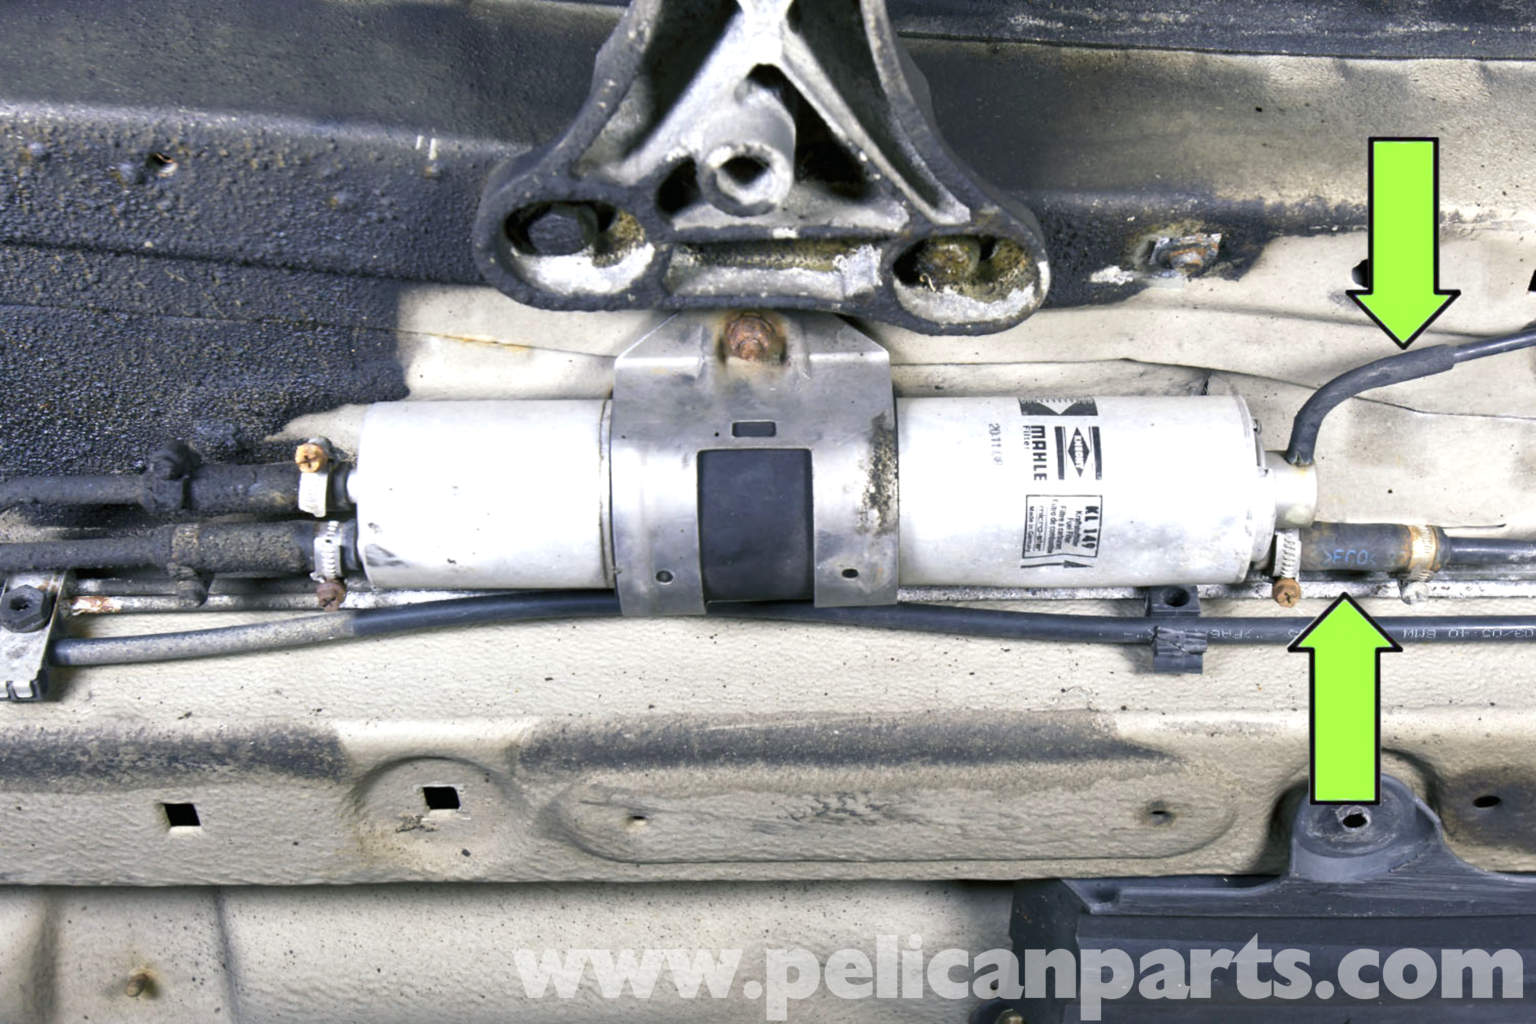 BMW E46 Fuel Filter Replacement | BMW 325i (2001-2005), BMW 325Xi